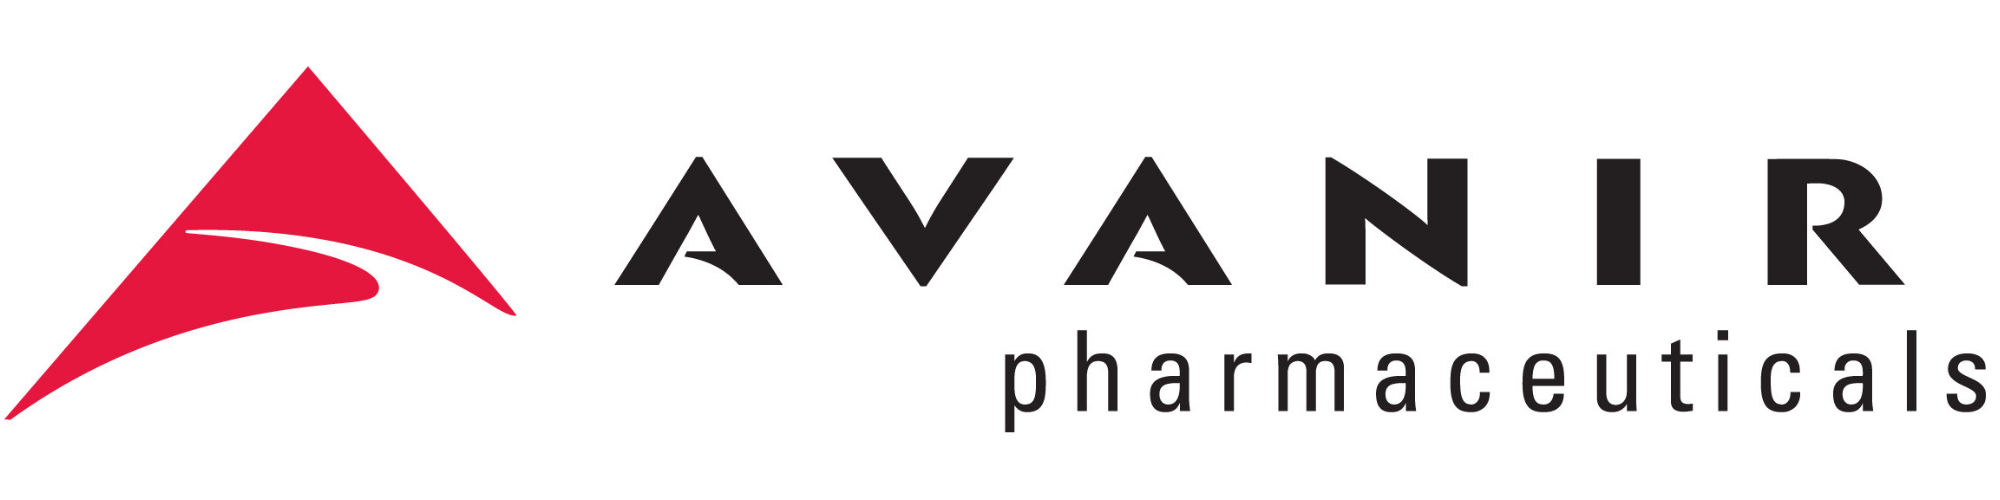 Avanir Pharmaceuticals, Inc. is a biopharmaceutical company focused on bringing innovative medicines to patients with central nervous system disorders of high unmet medical need.